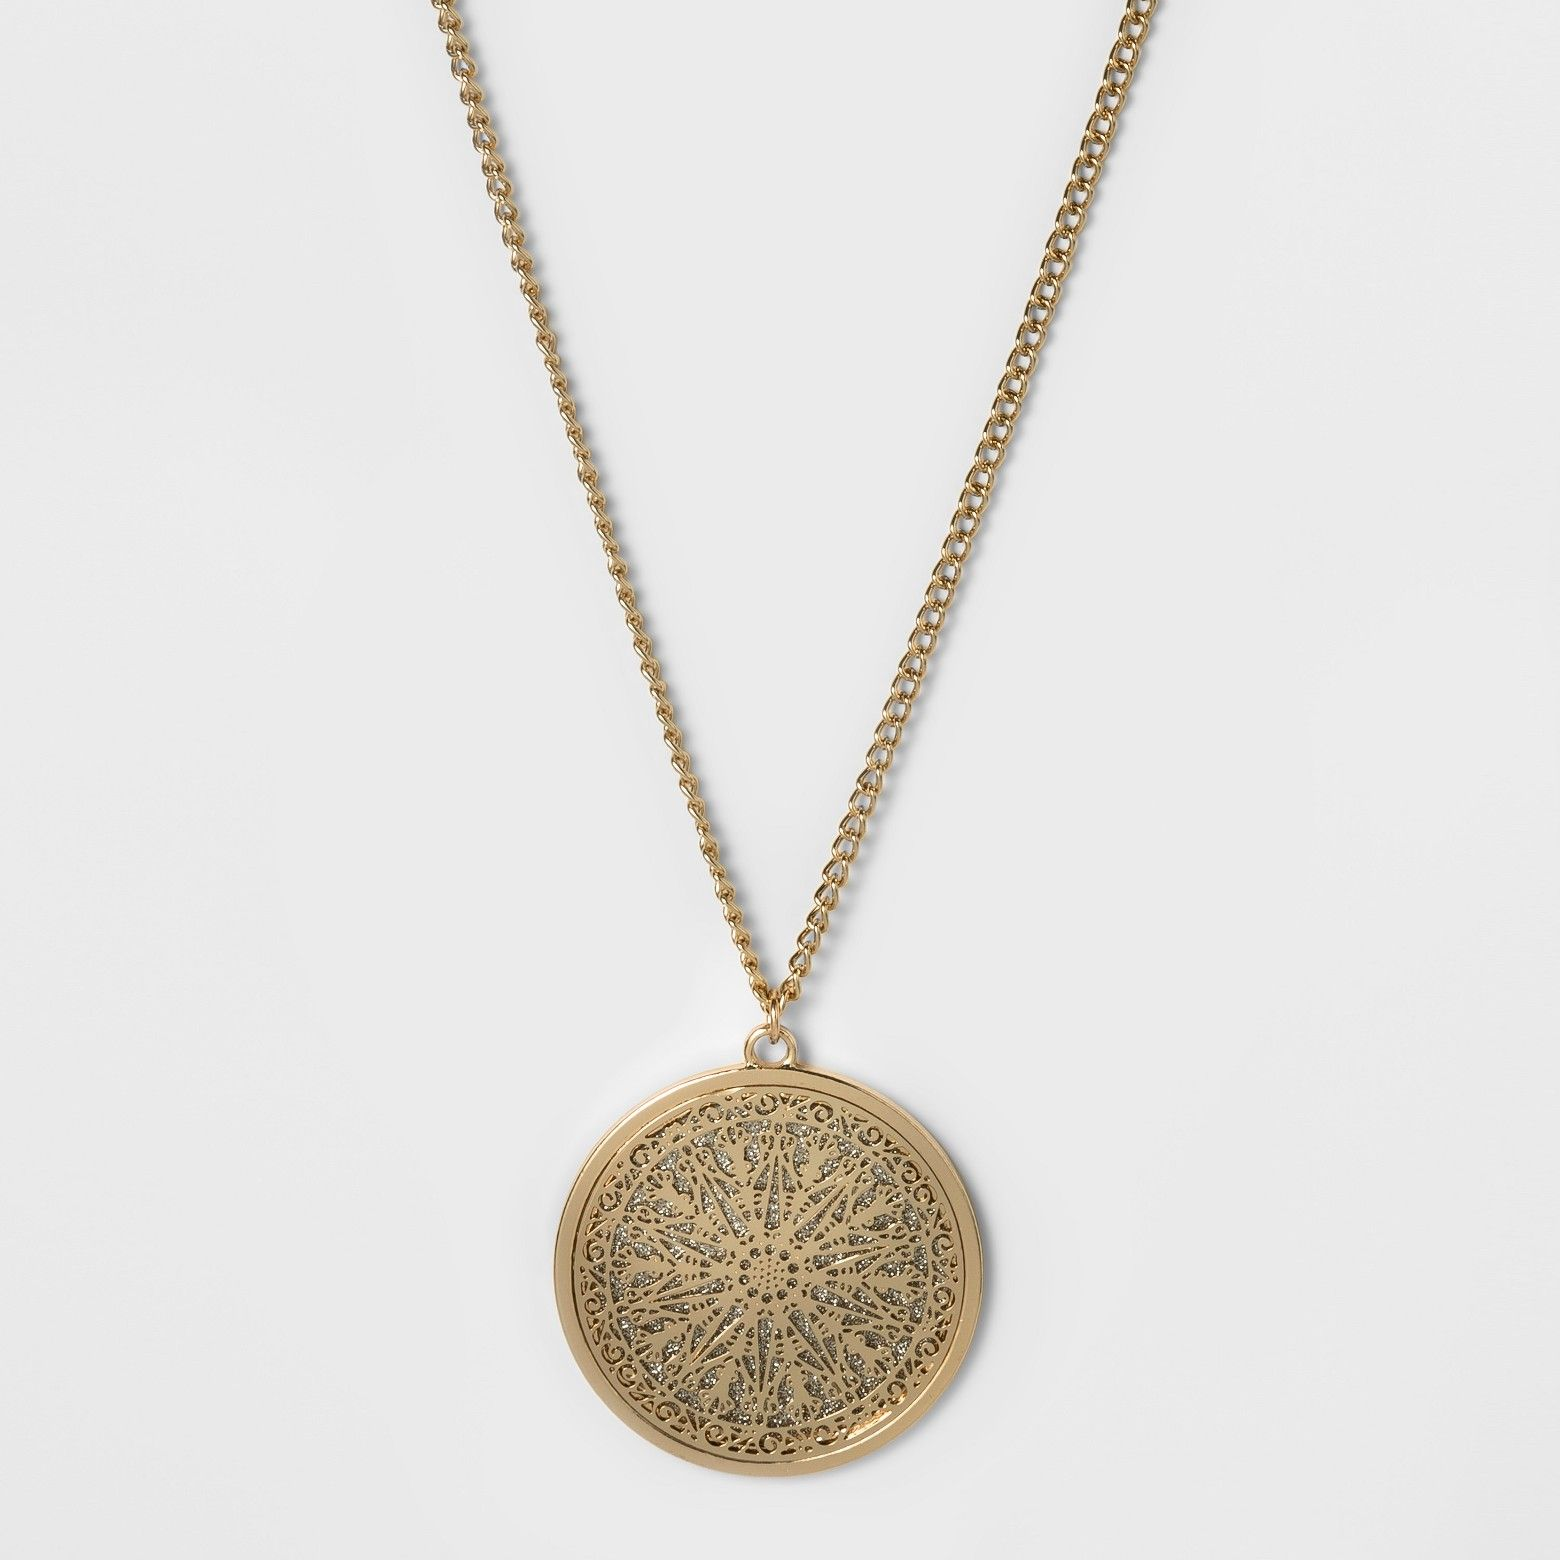 Fashion pendant necklace silvergold thin gold chain gold